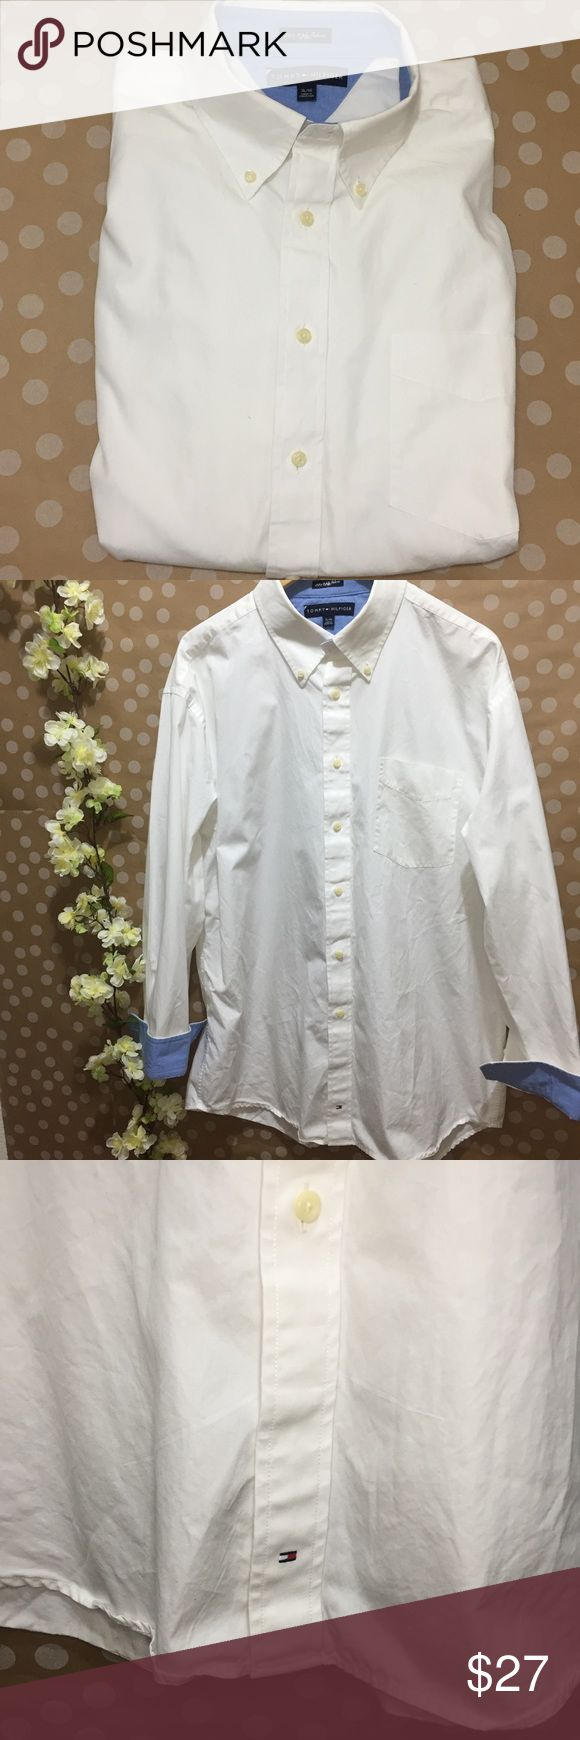 """Tommy Hilfiger White 80's 2 ply fabric Excellent condition with no flaws. Armpit to armpit 23"""" length 33"""". Bundle and save! Tommy Hilfiger Shirts Dress Shirts"""